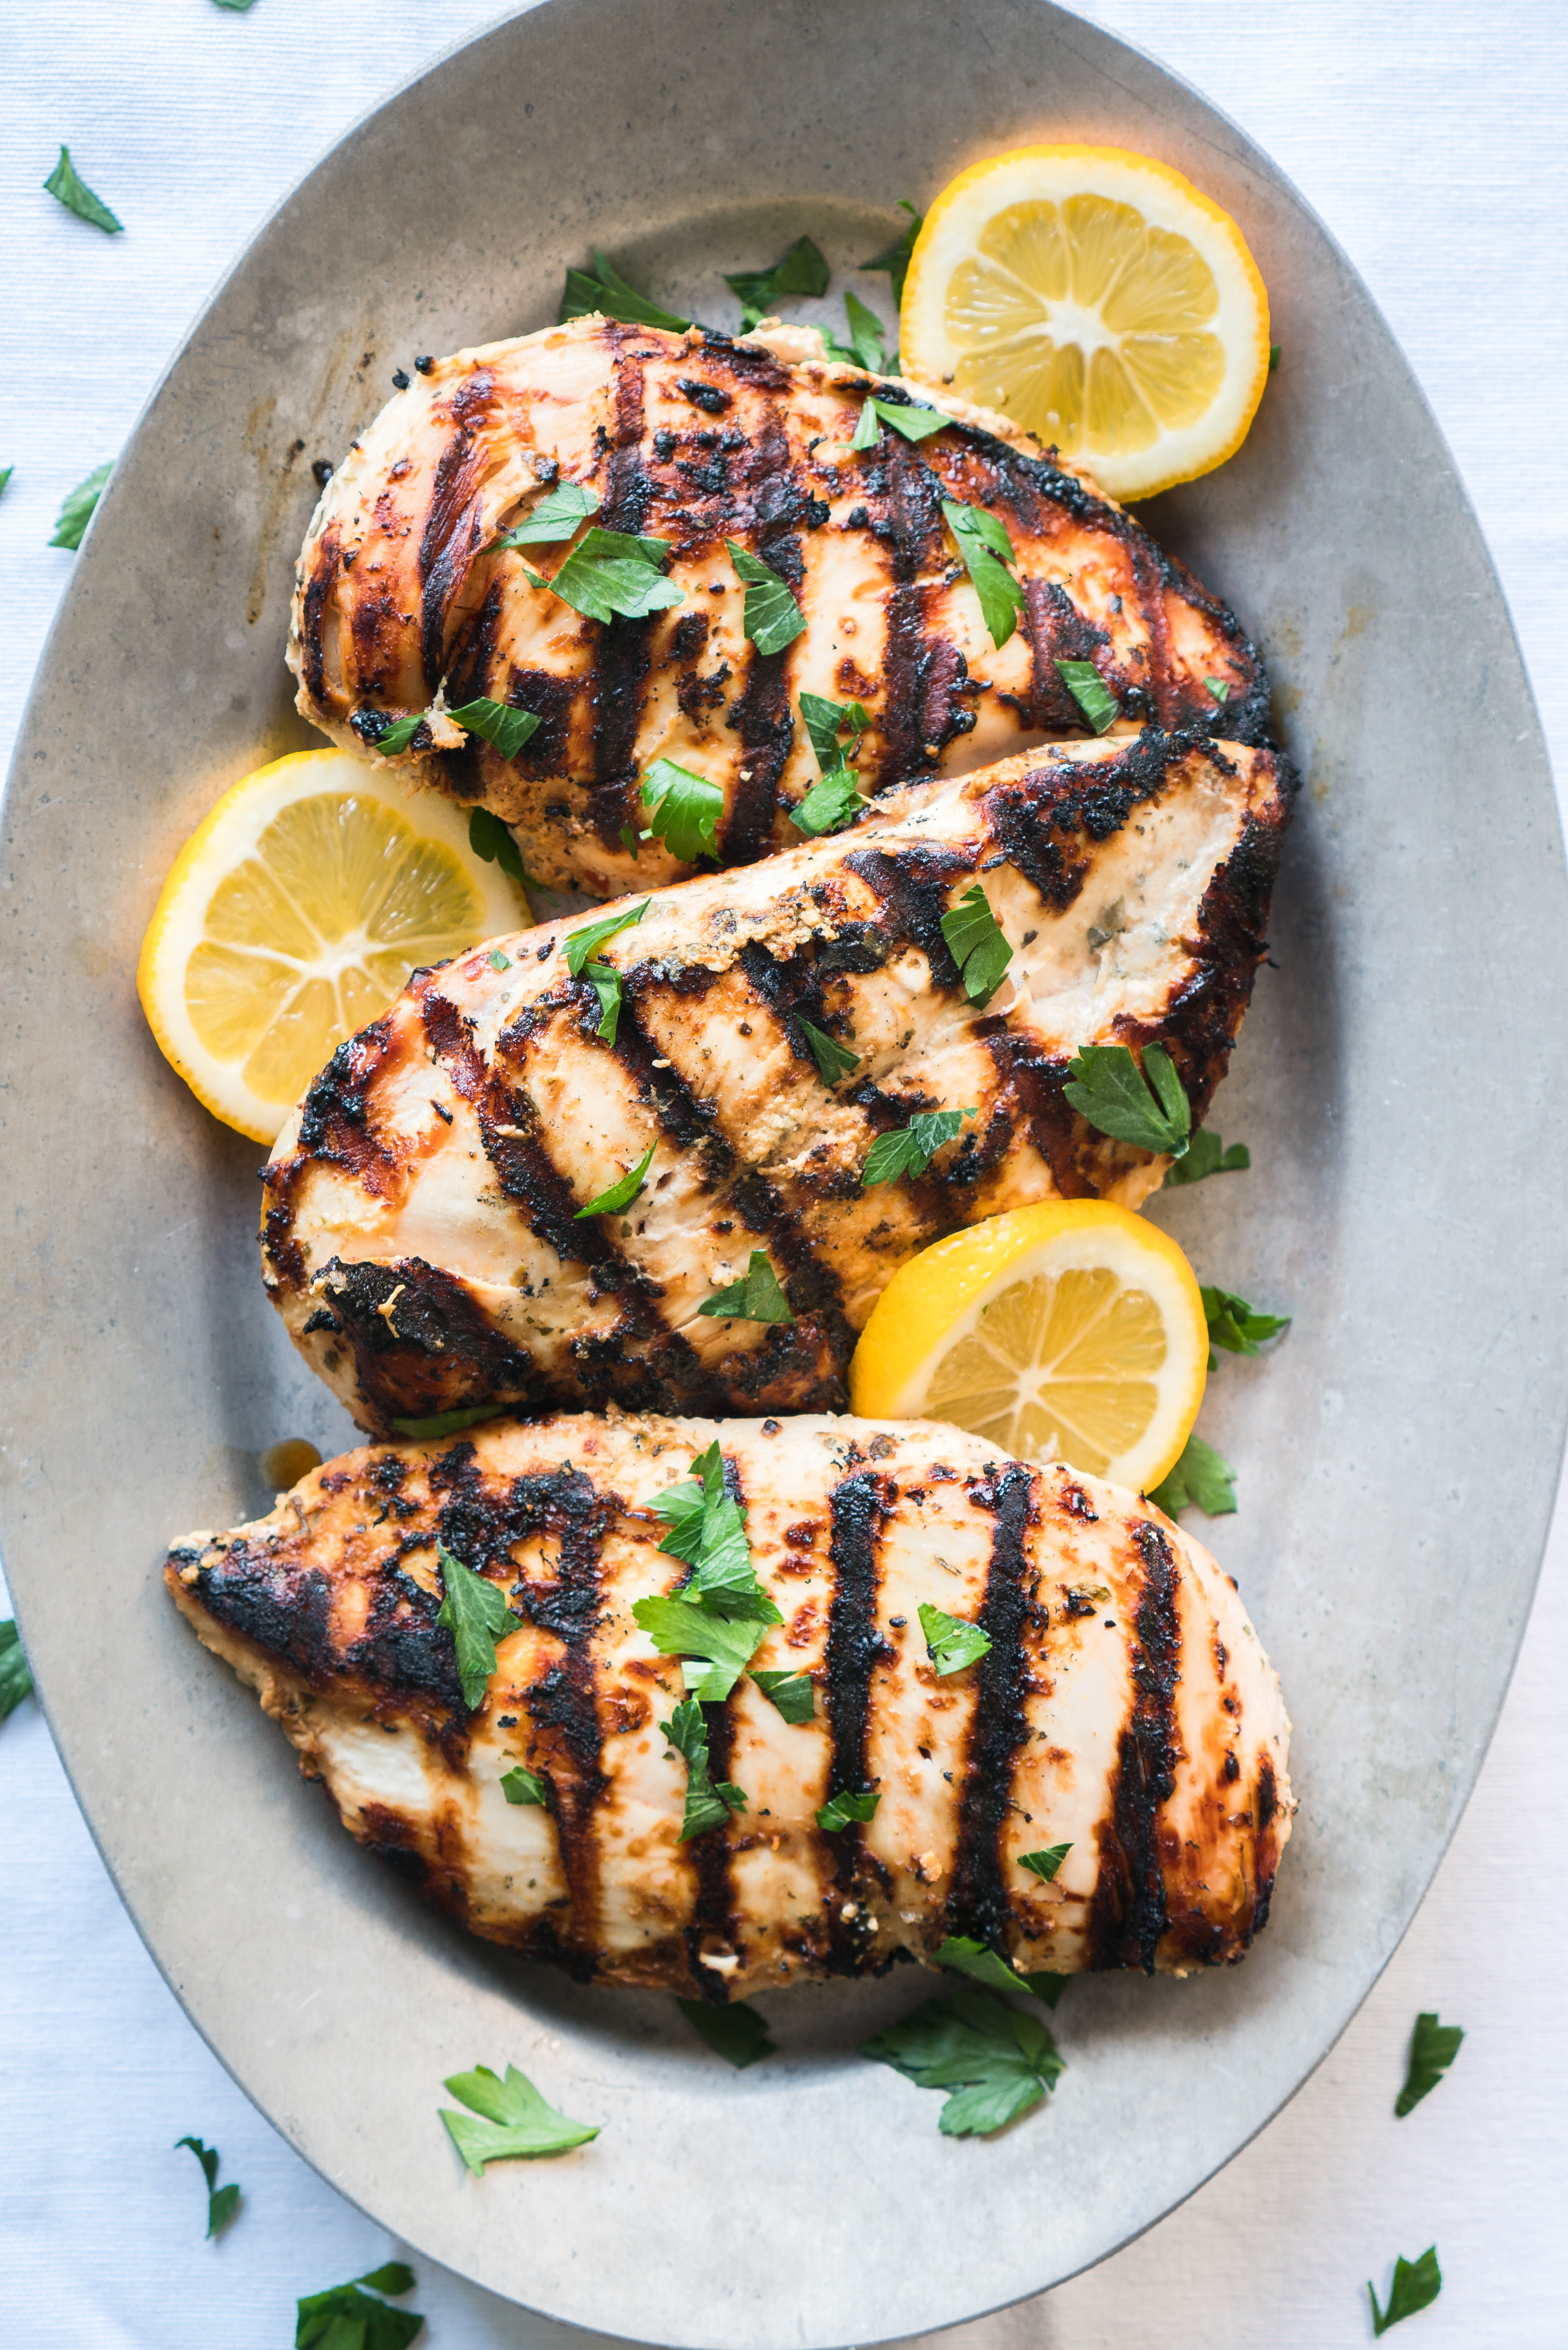 Yogurt Marinated Greek Chicken – Healthy recipe for Yogurt Marinated Greek Chicken! These easy gluten free, grilled chicken breasts cook in just 12 minutes! This marinade is bursting with classic Mediterranean flavors like Greek yogurt, lemon juice, garlic, oregano, basil, coriander, parsley, olive oil, & red wine vinegar. ♥ | freeyourfork.com